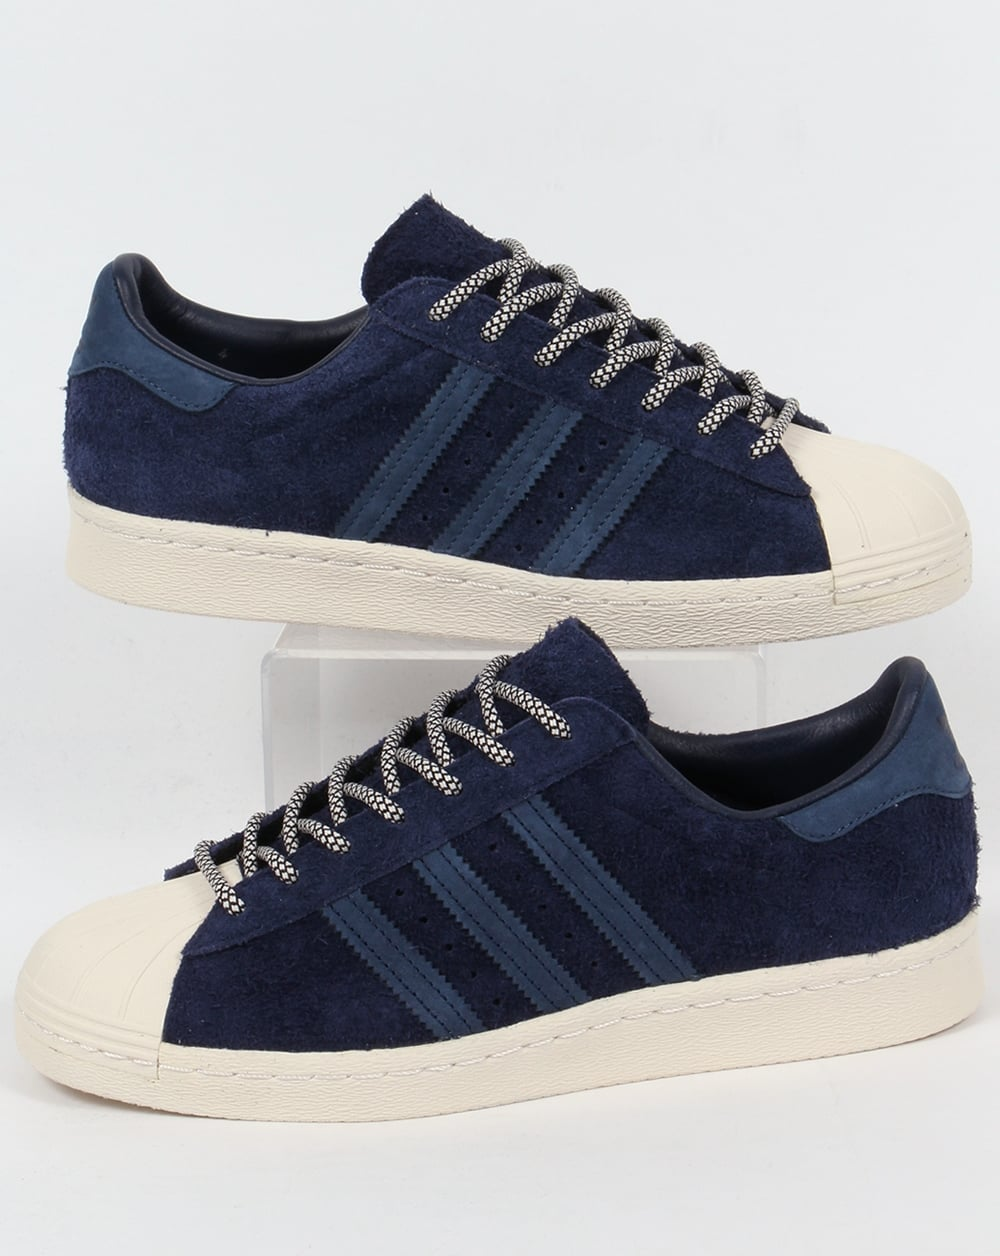 b13804c0d6e adidas Trainers Adidas Superstar 80s Trainers Navy Mineral Blue White